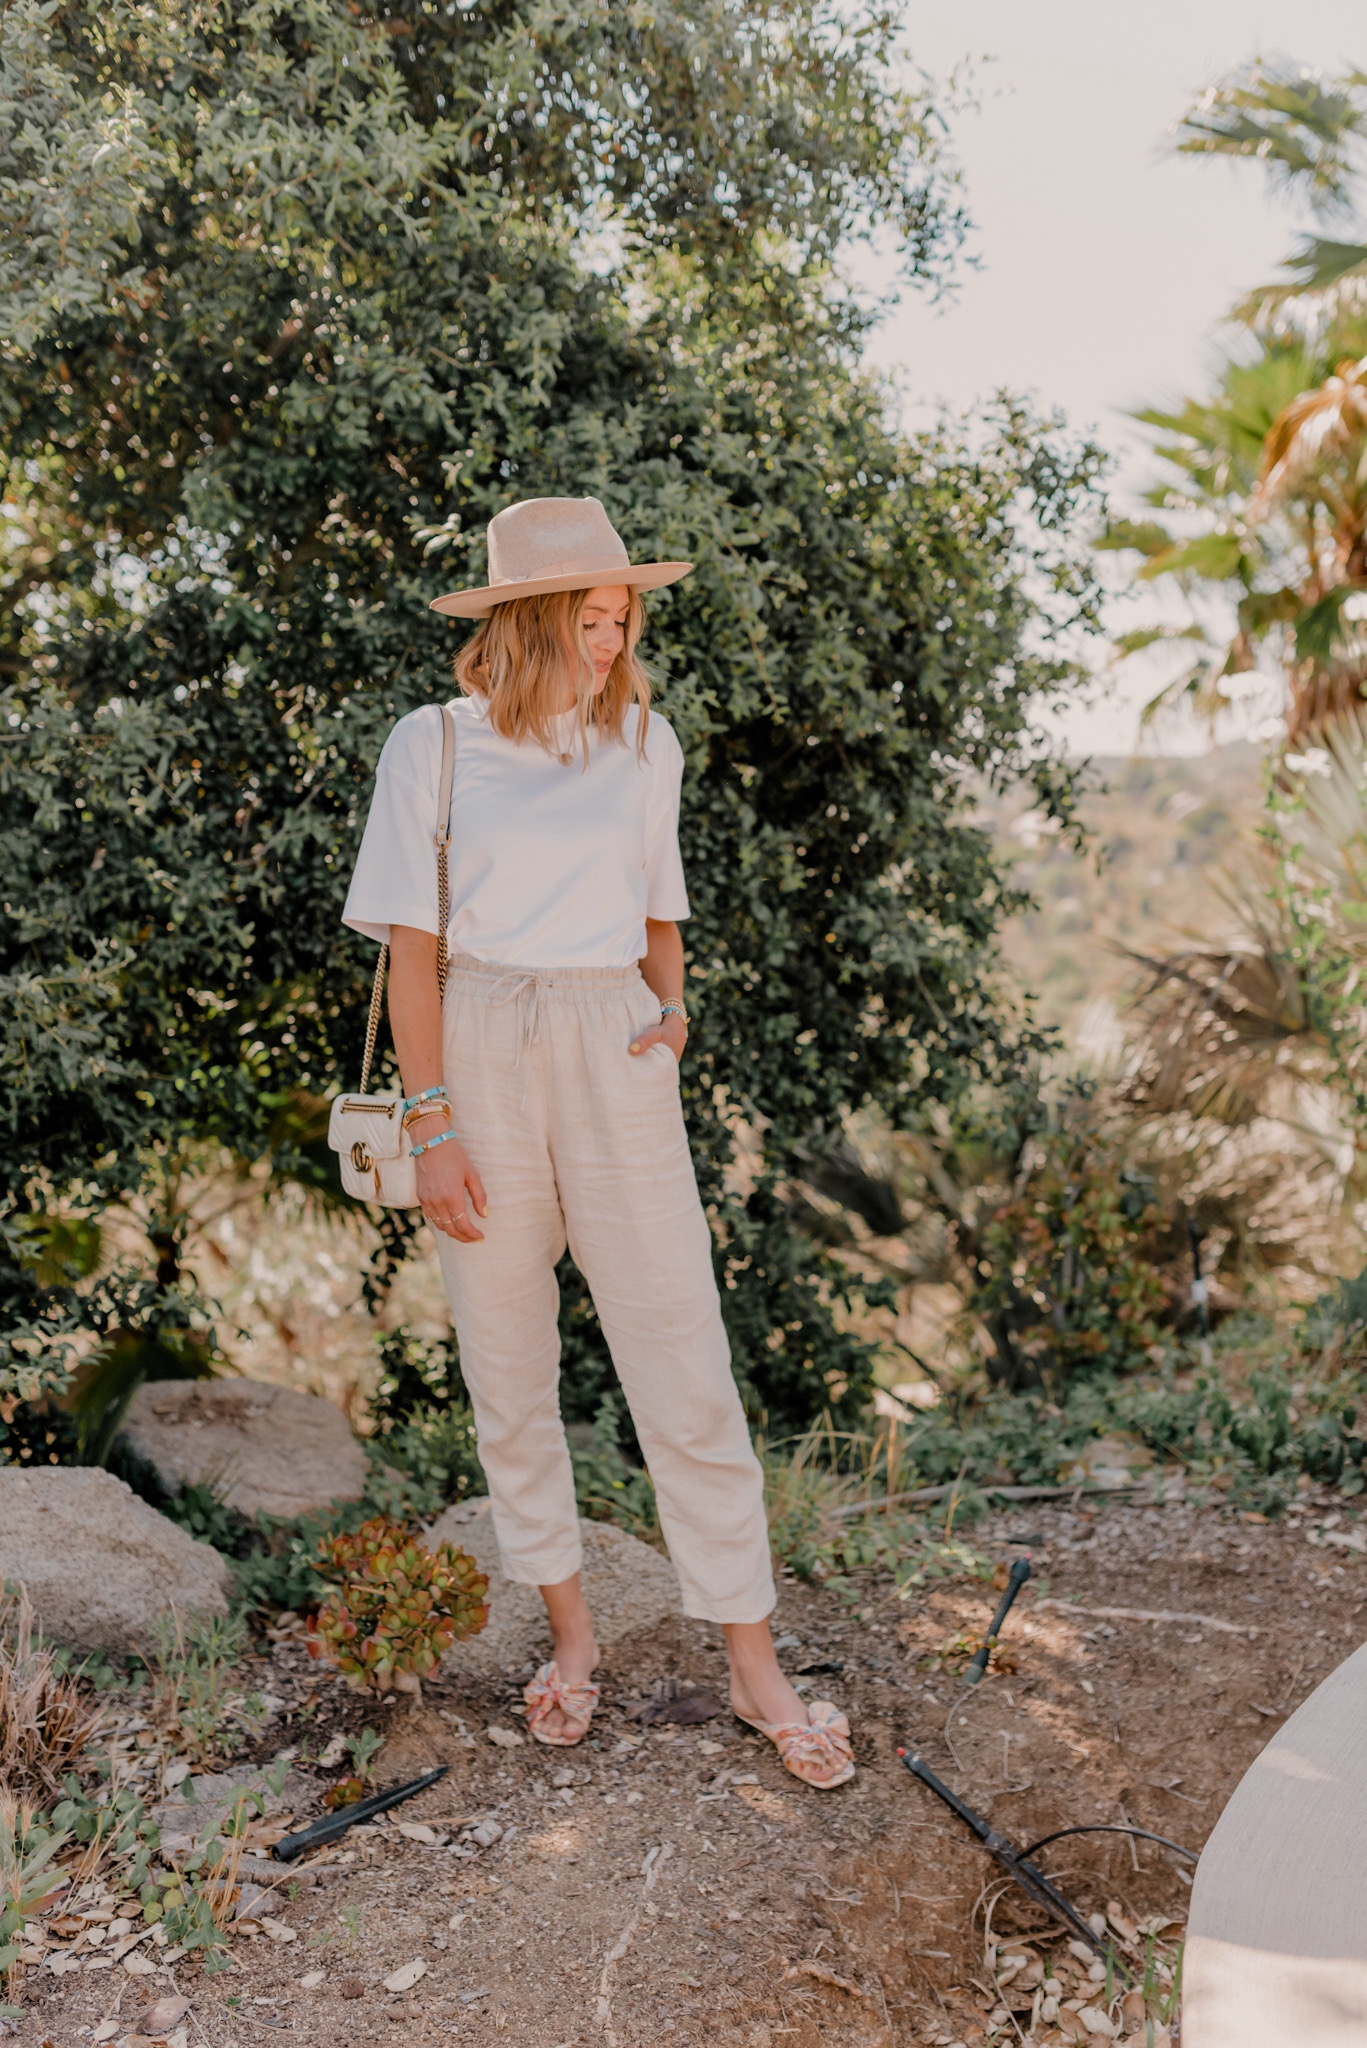 Linen Blend by popular San Diego fashion blog, Navy Grace: image of a woman standing outside and wearing H&M Linen Joggers, Target Prologue Short Sleeve T-Shirt, Loeffler Randall Daphne Flat Floral Sandals, Gigi Pip Monroe Oatmeal rancher hat, and holding a Nordstrom Small Matelassé Leather Shoulder Bag GUCCI.